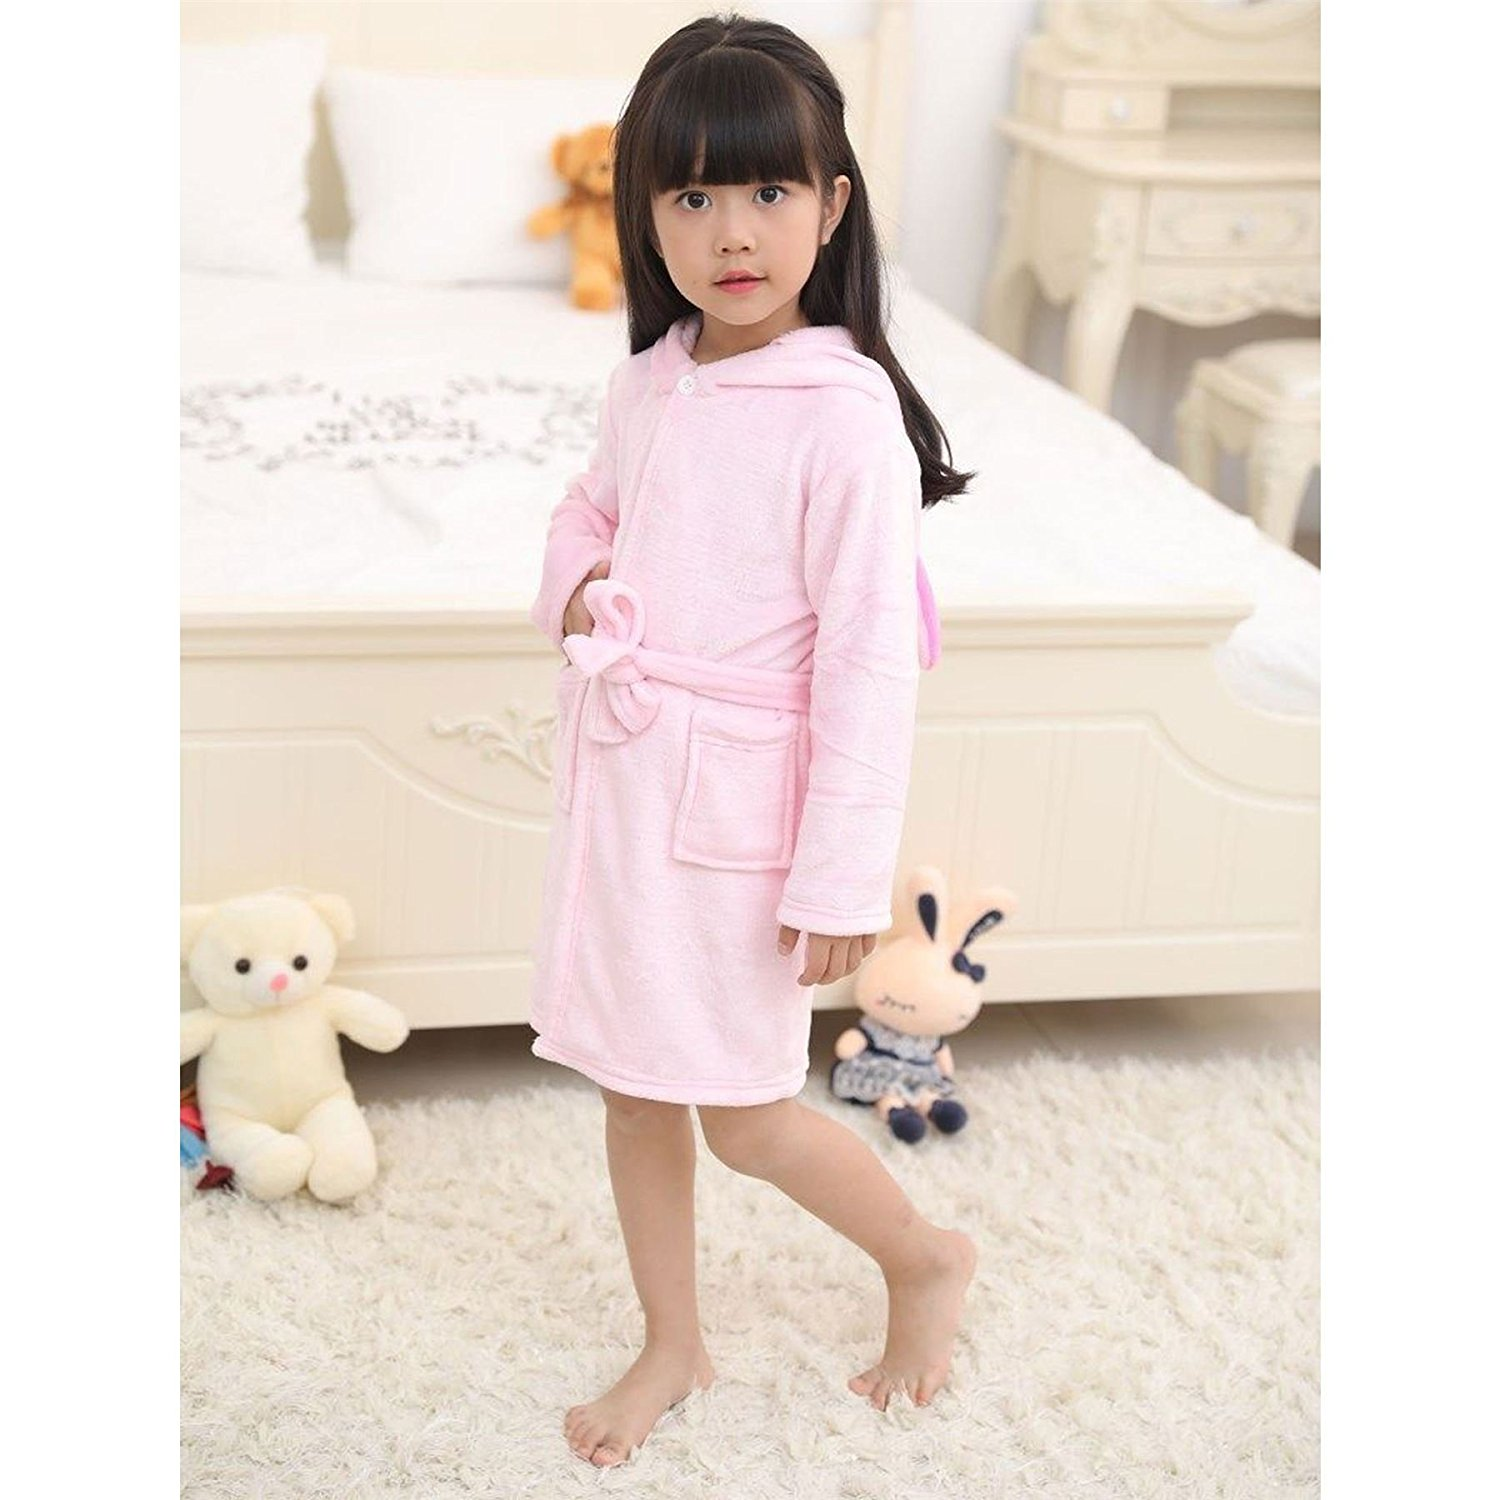 ded598d68a Get Quotations · Girls Bathrobe 3D Animal Unicorn Baby Pink Dressing Gown  Fleece Night Loungewear